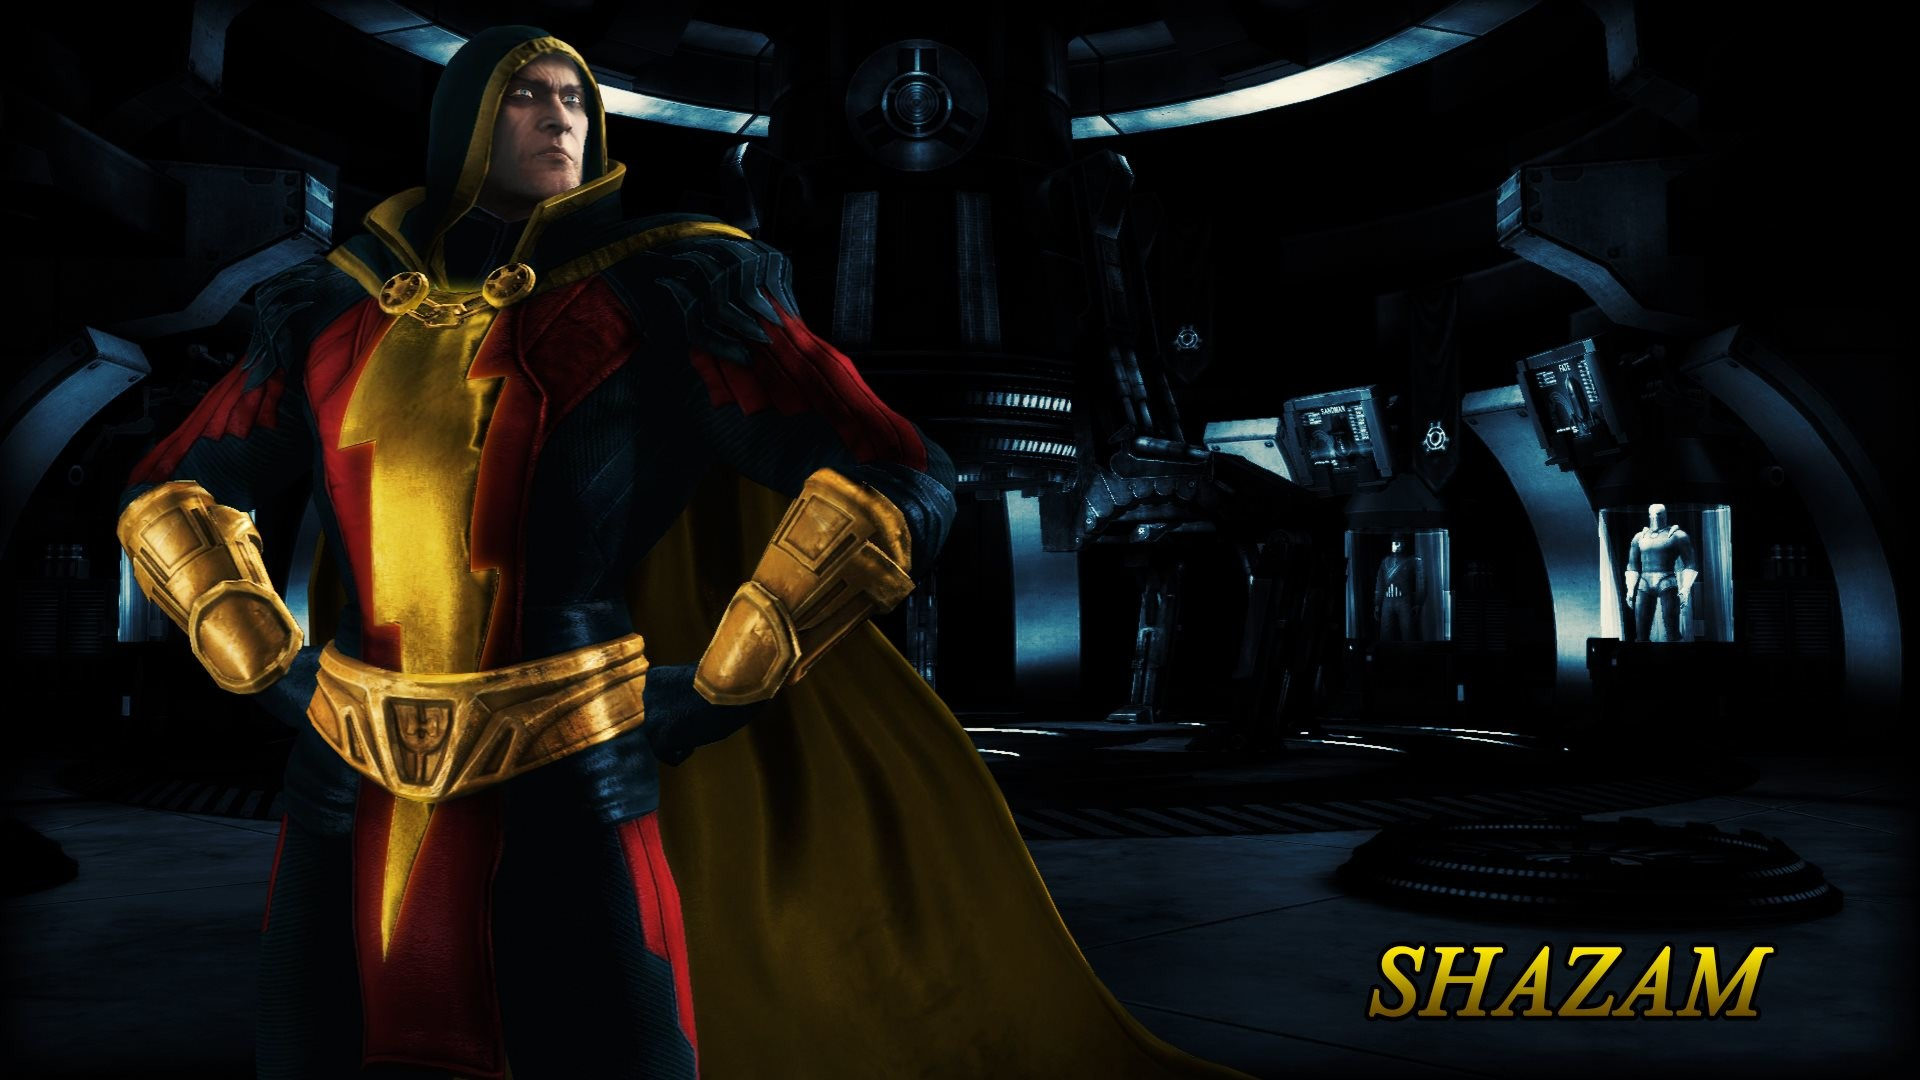 In the 7th wallpaper is Shazam (Regime) from Injustice – Gods Among Us